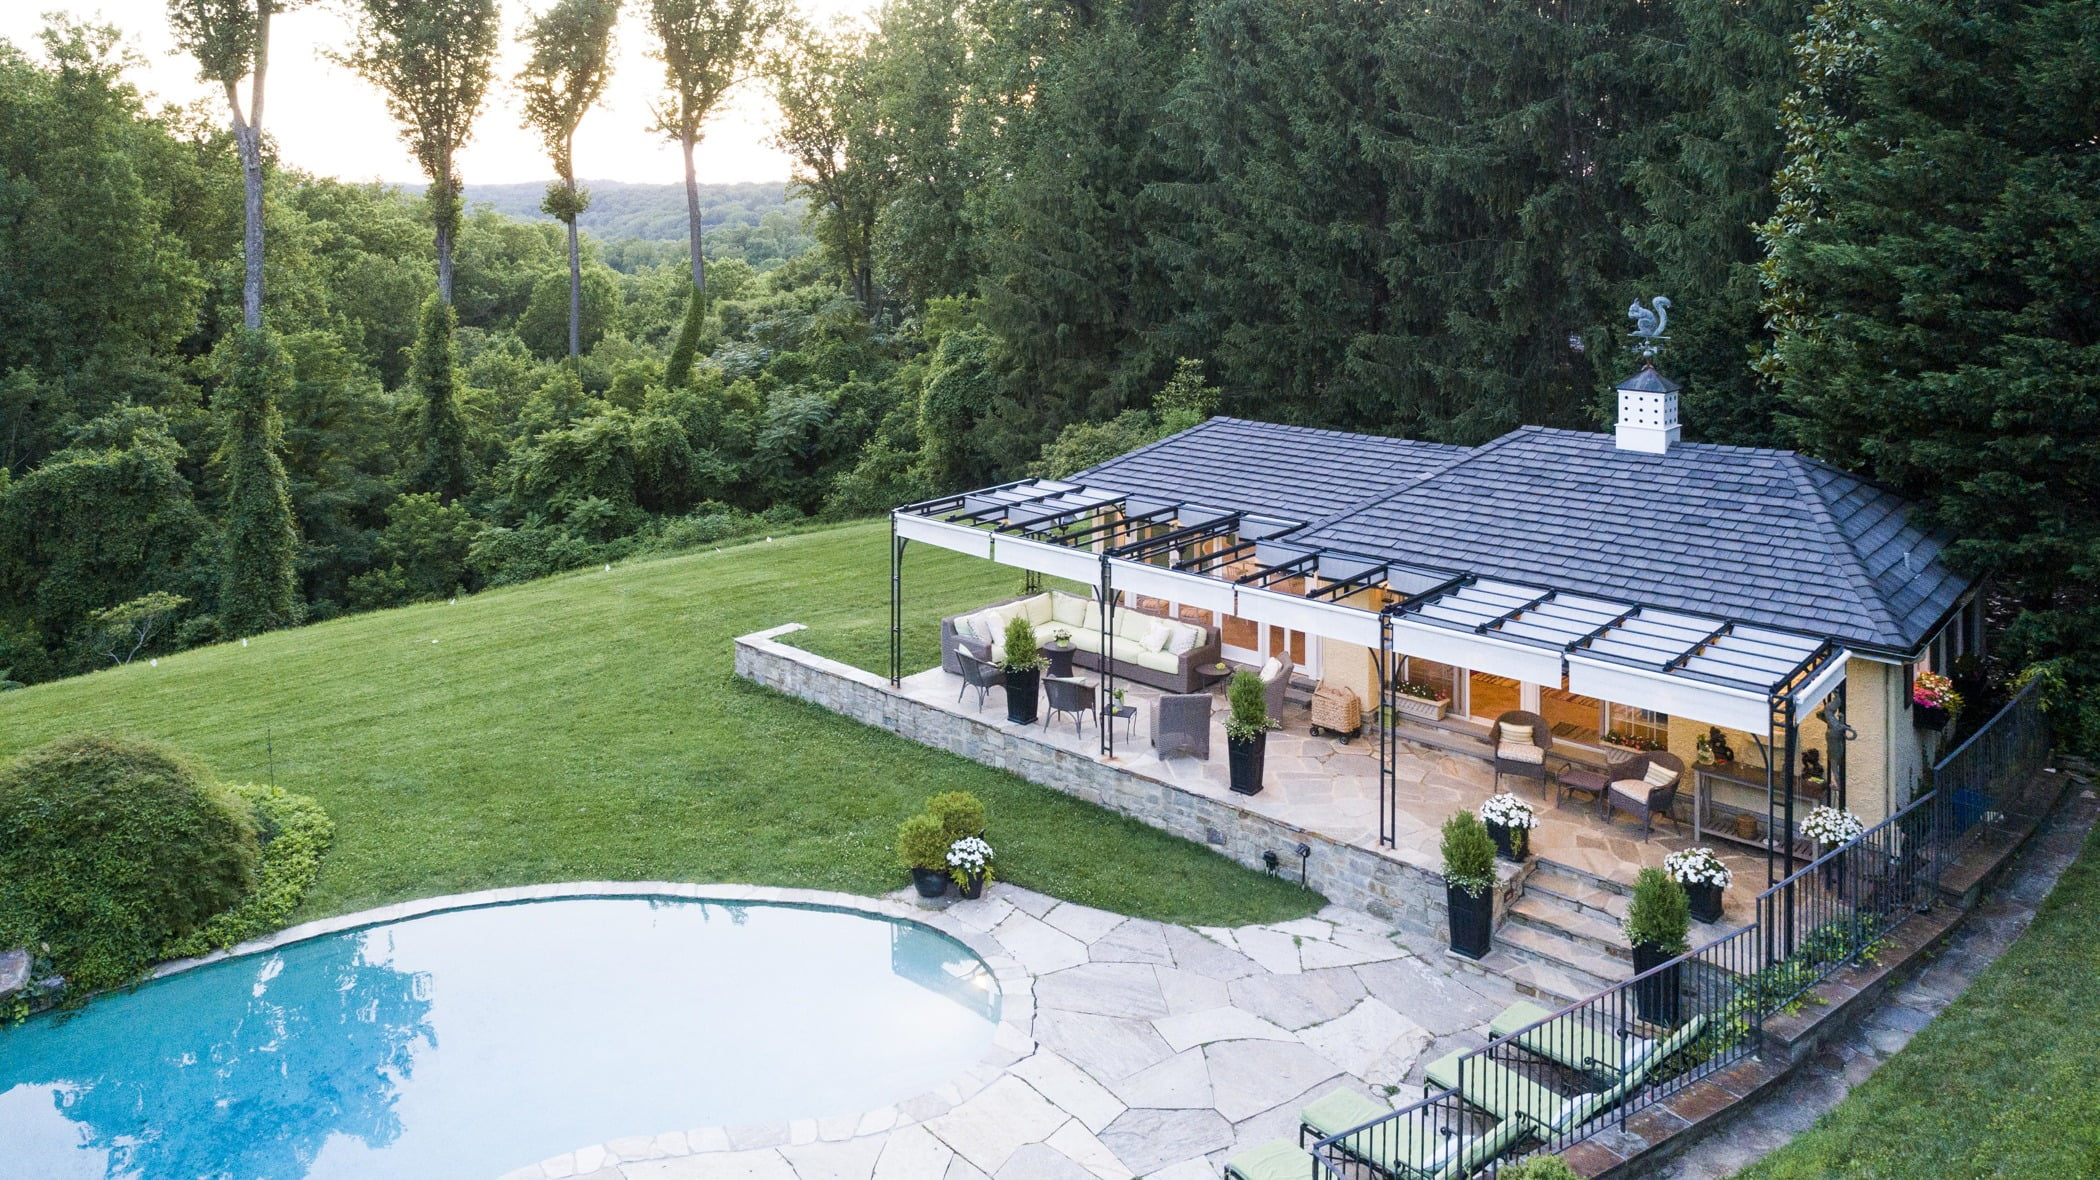 Luxury pool house custom designed for a home remodel with a large seating space and large metal pergola (Aerial view)